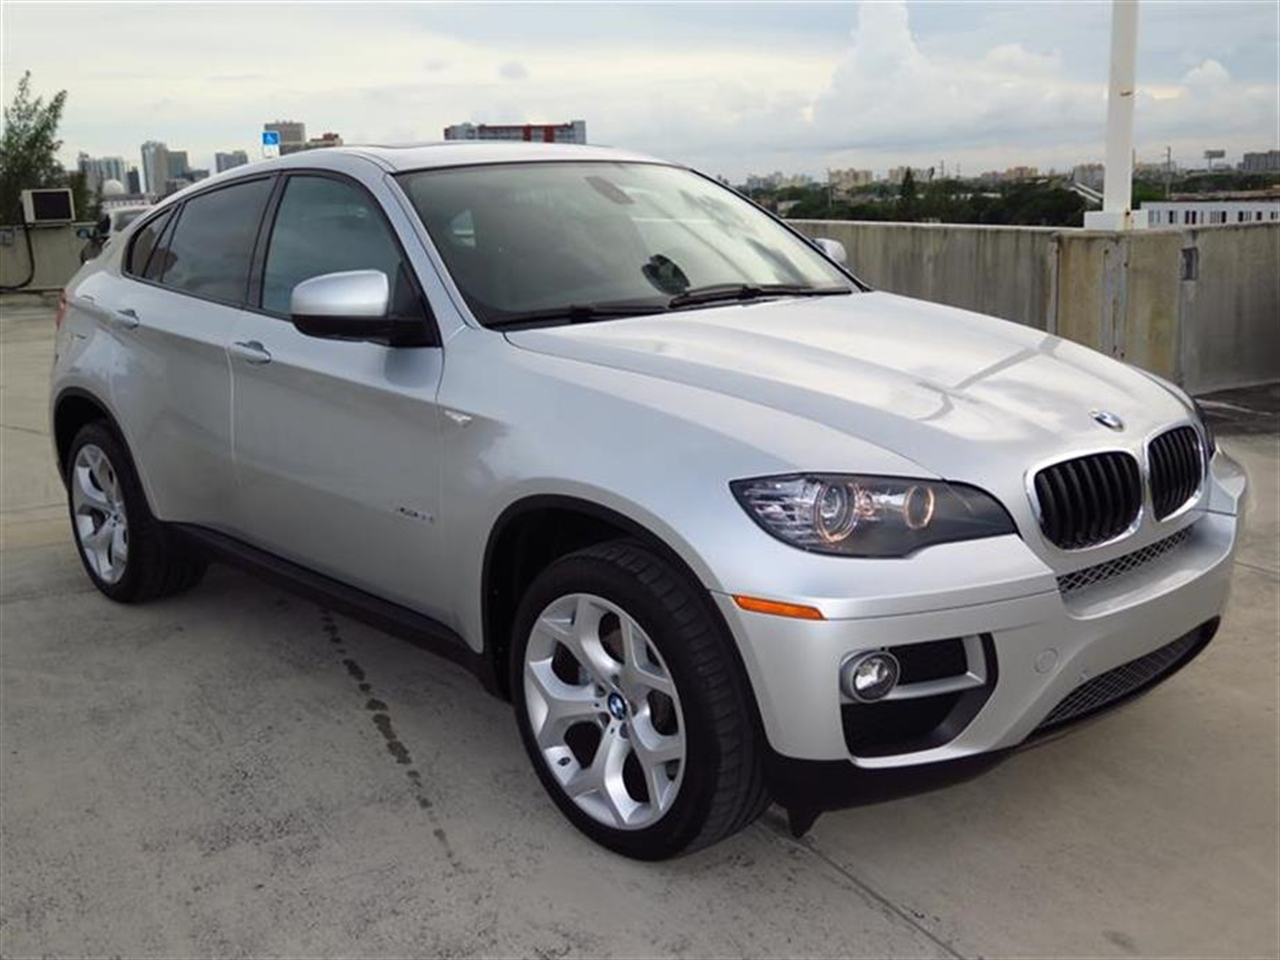 2014 BMW X6 AWD 4dr xDrive35i 5276 miles 2 Seatback Storage Pockets 4 Person Seating Capacity 5